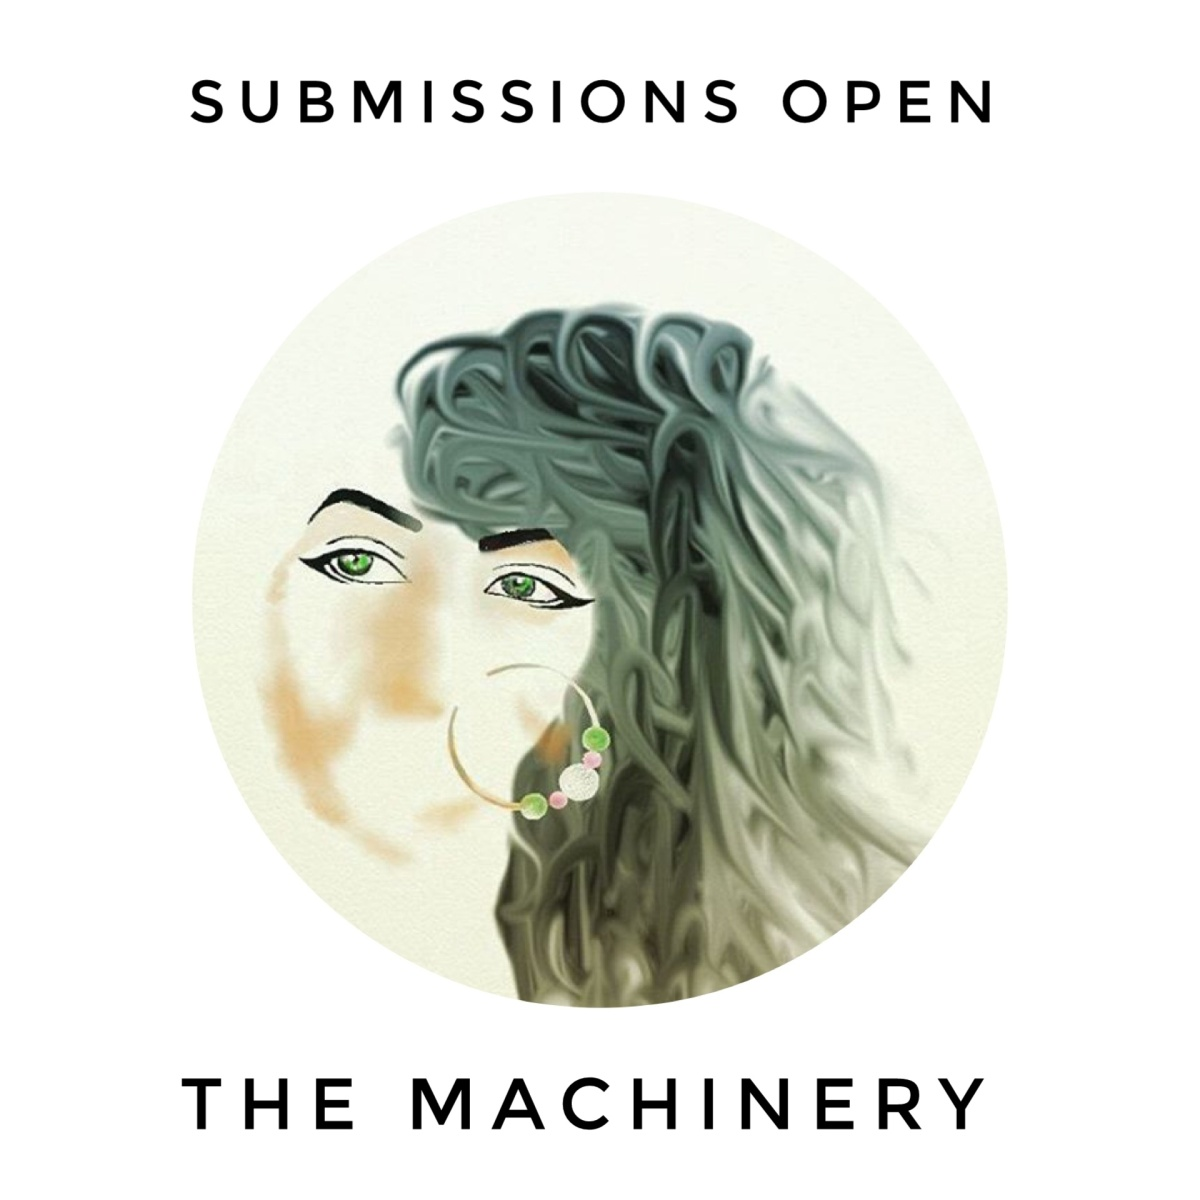 Call for Submissions - July 2017